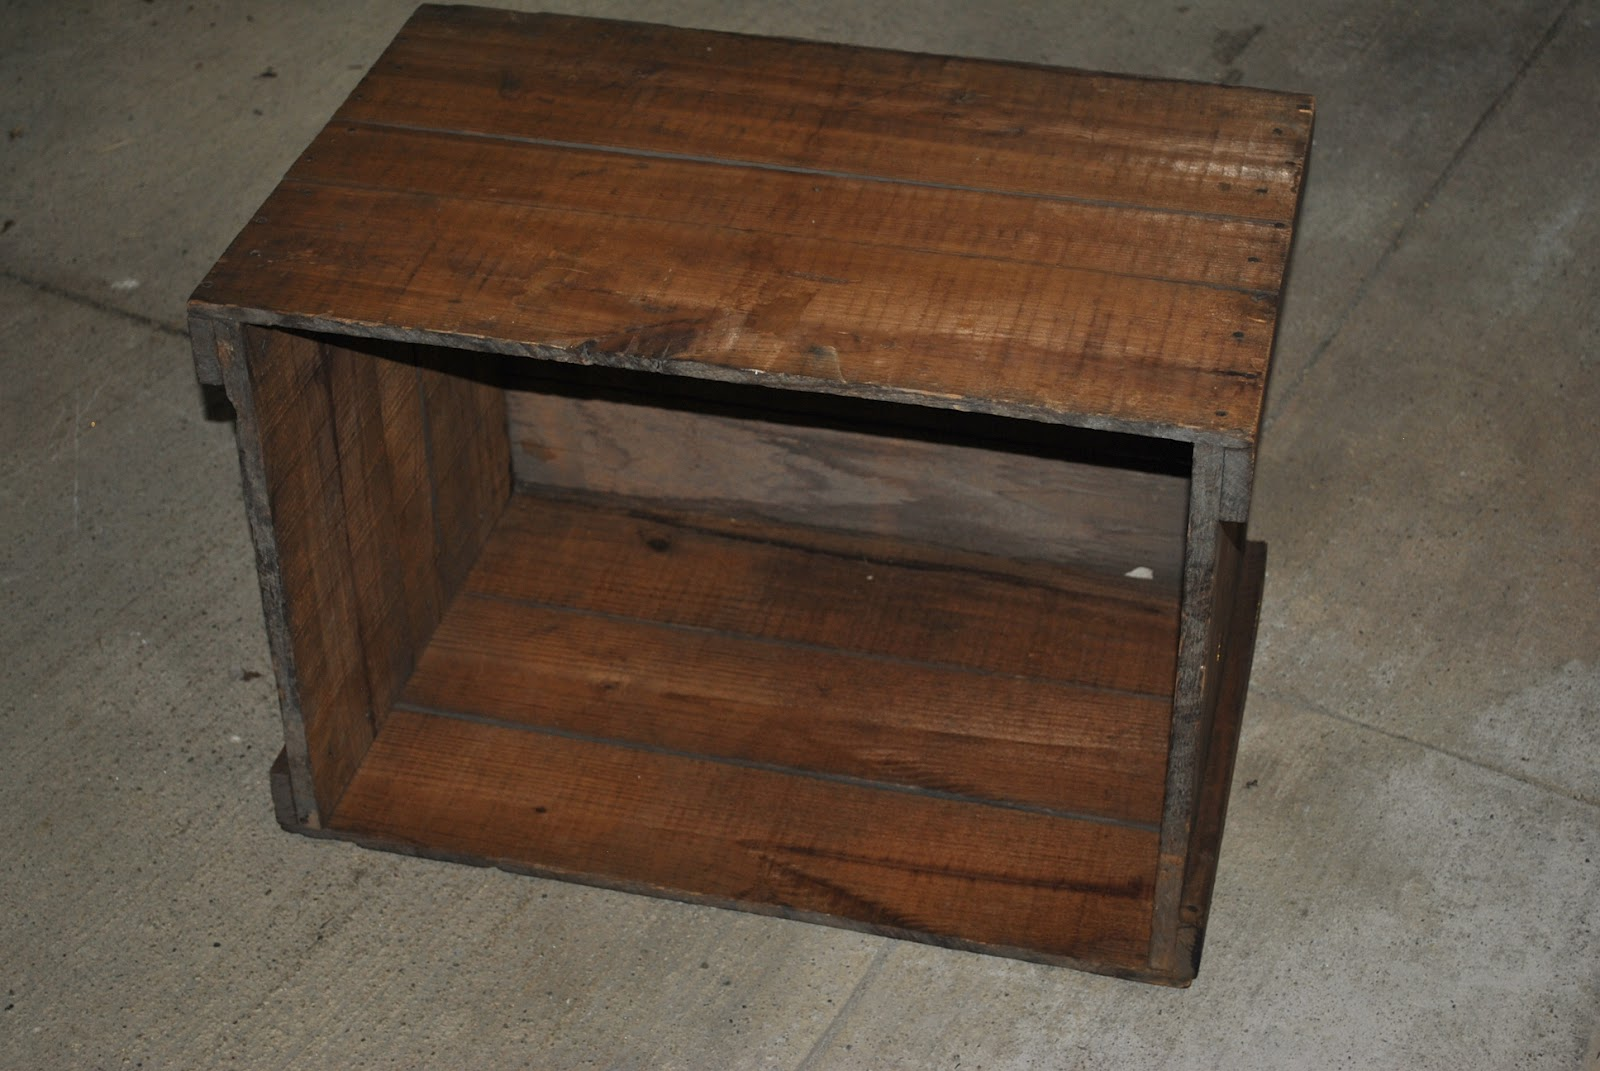 Cheap Wooden Crates Cheap Wooden Crates For Sale Free Artminds Wood Crate